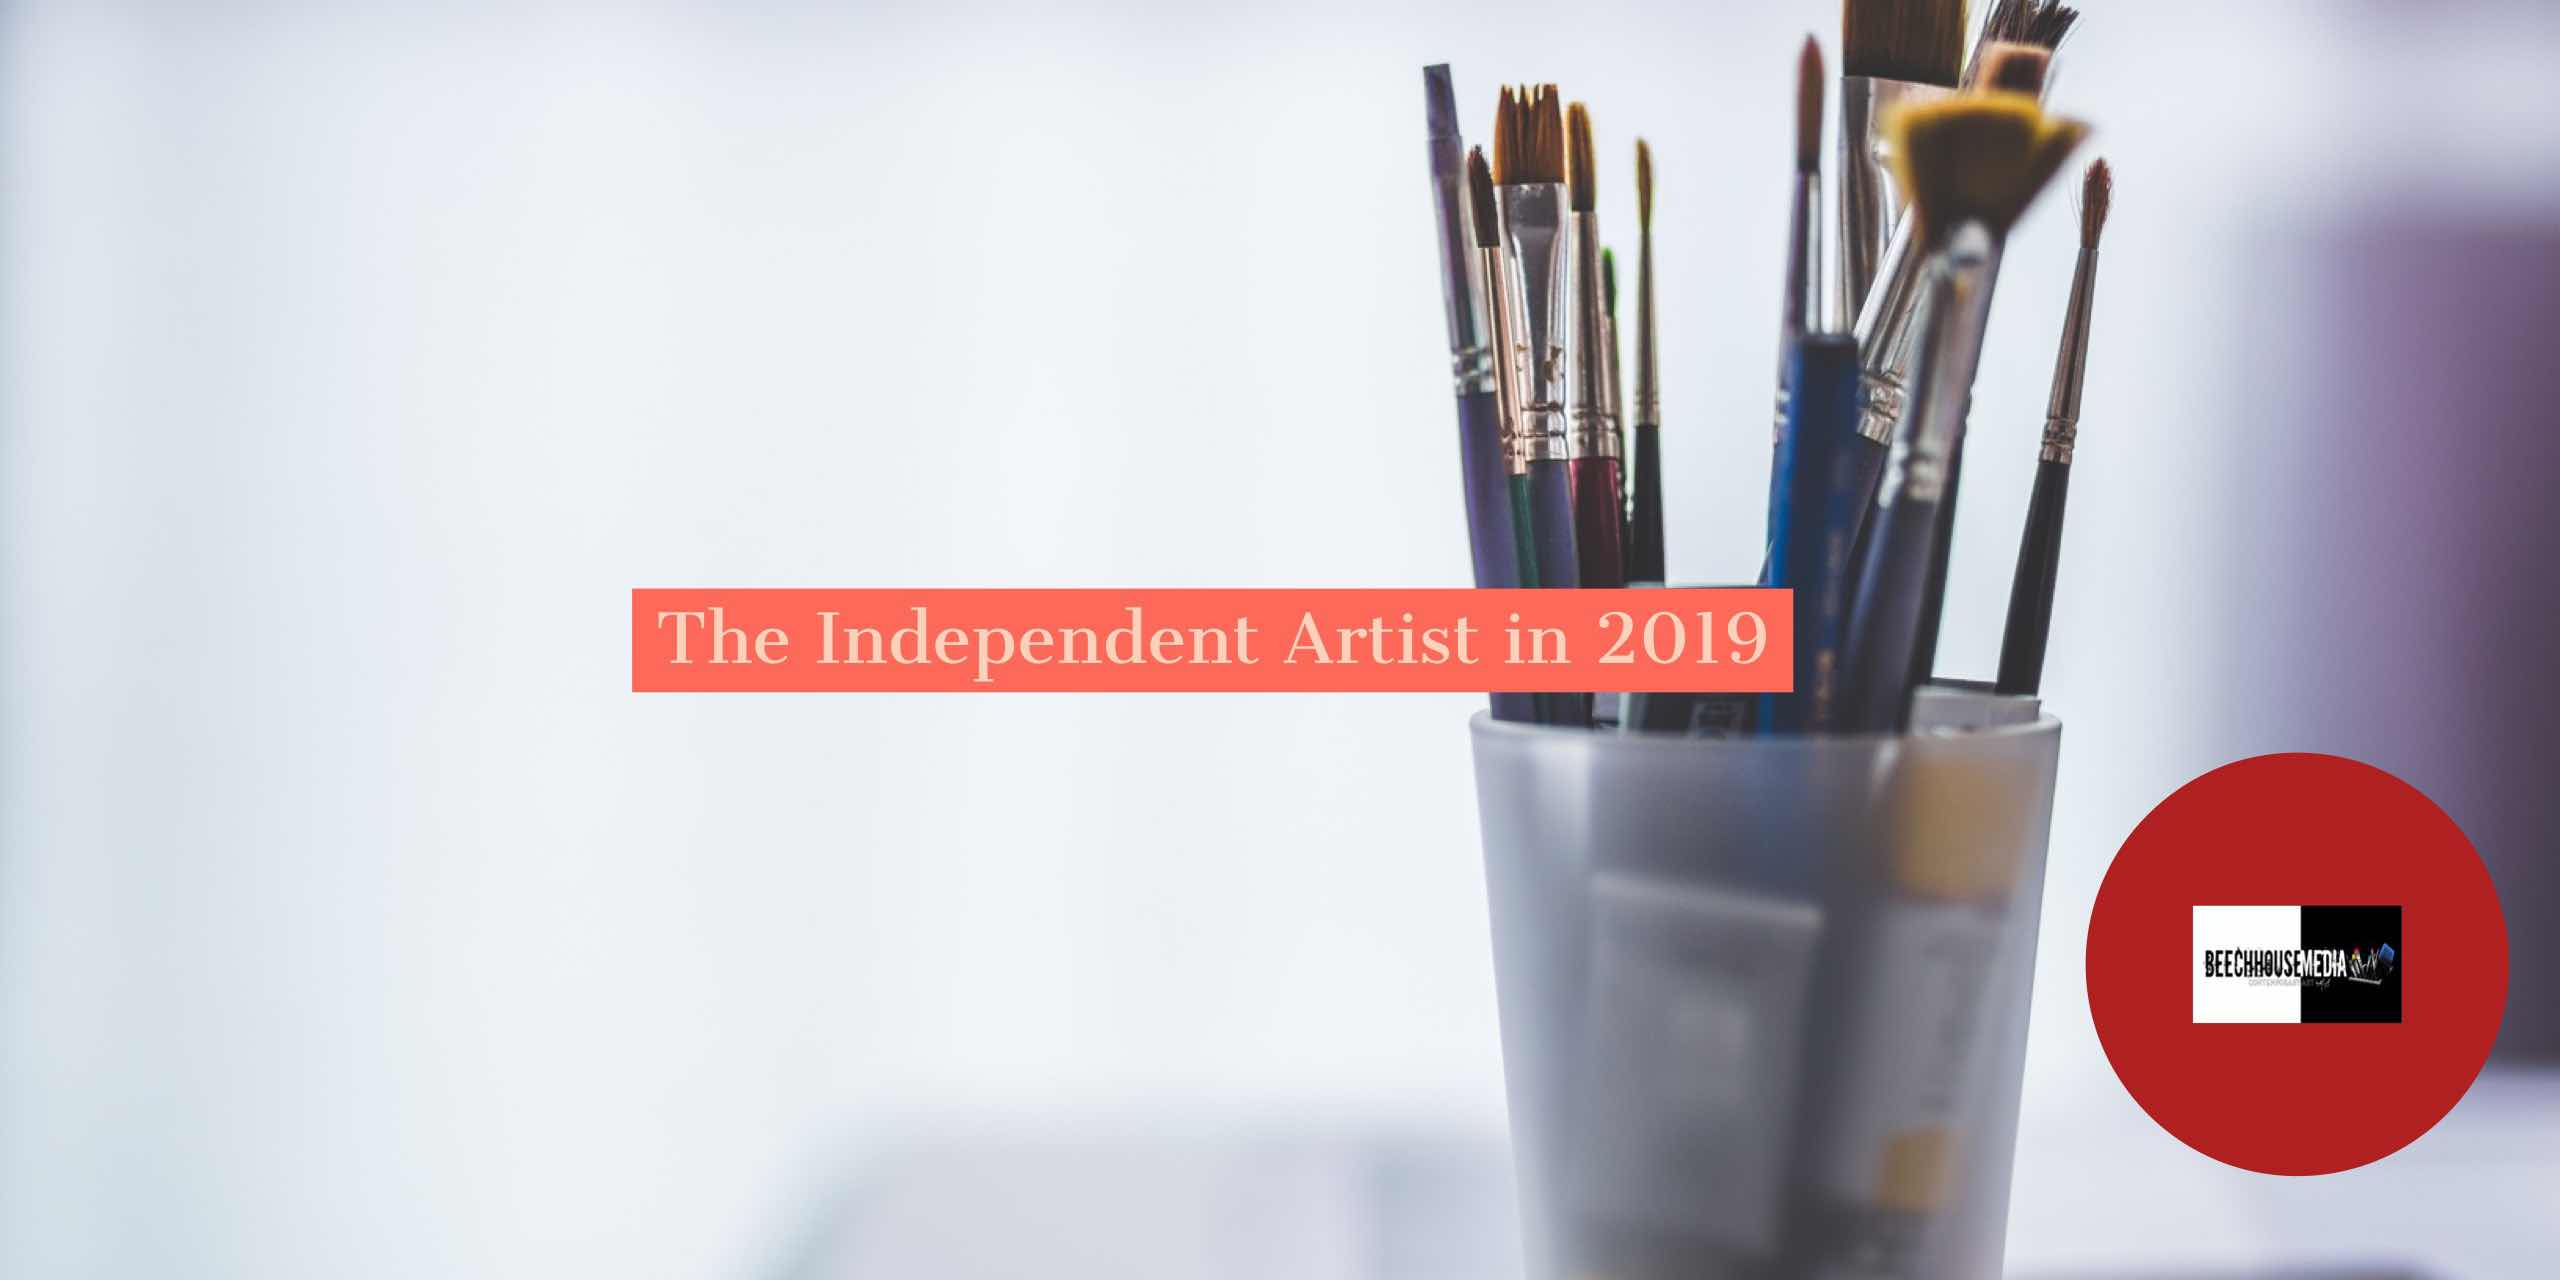 The Independent Artist 2019